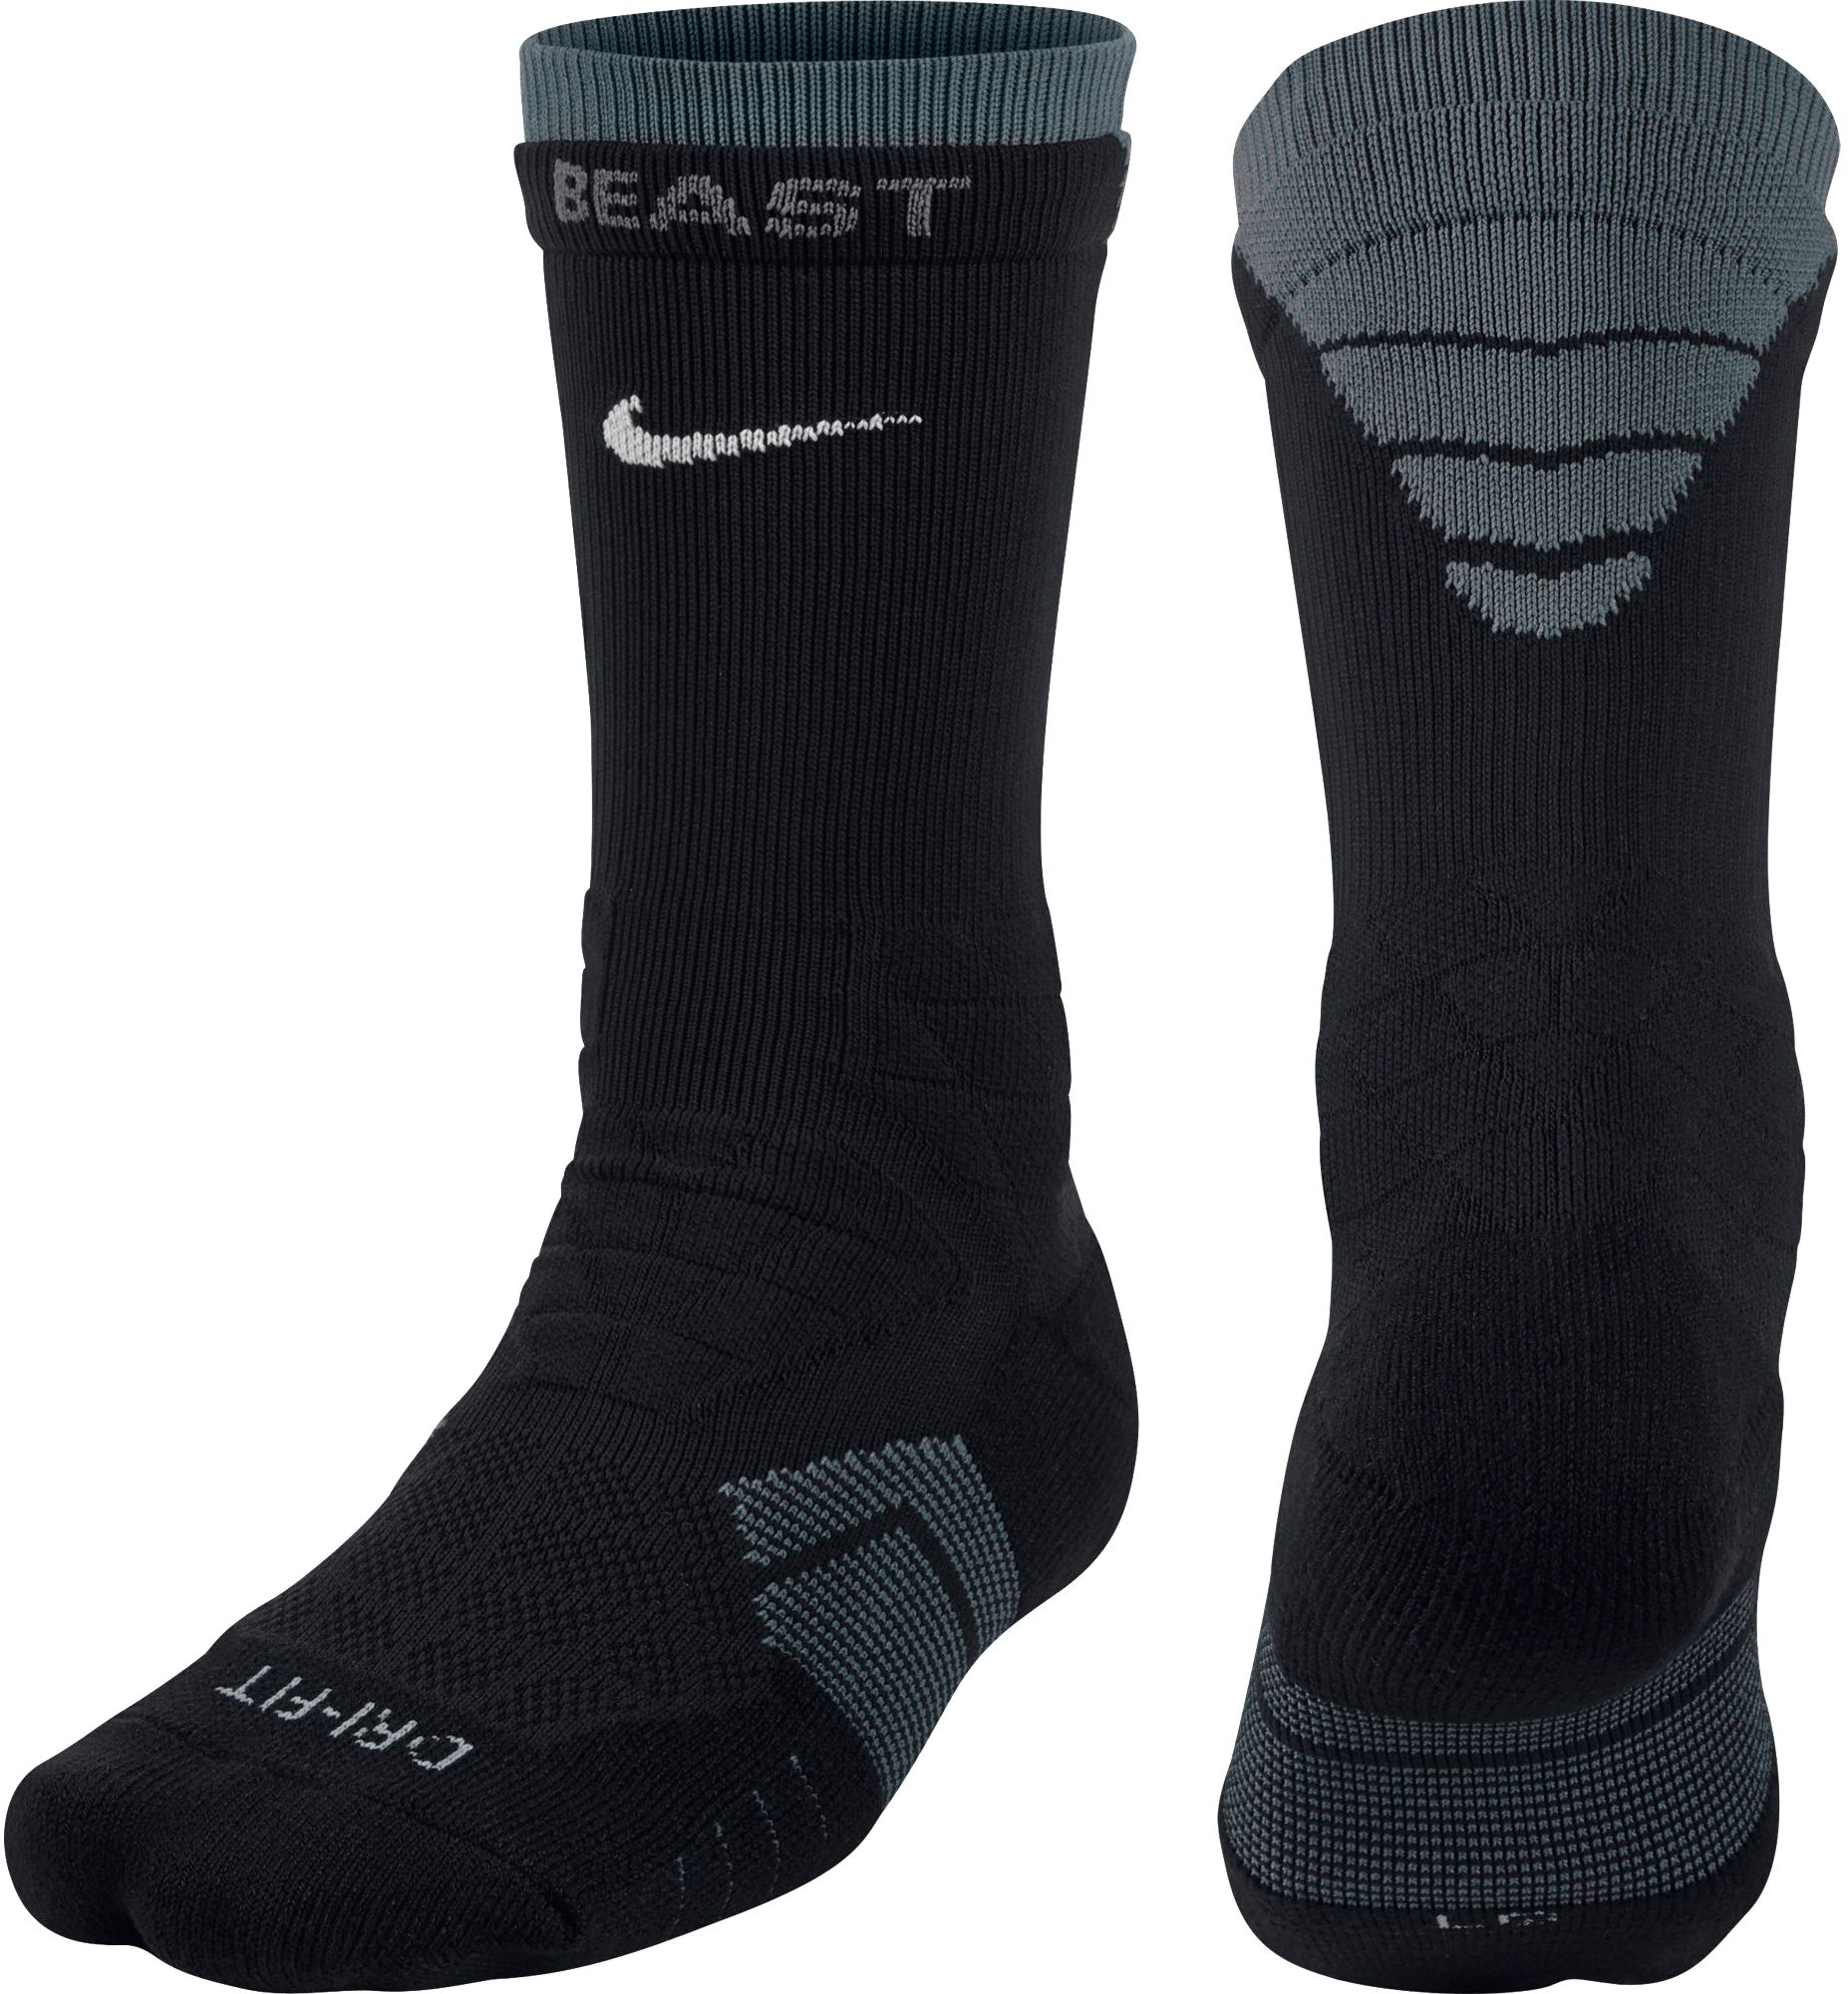 Product Image �� Nike Dri-FIT 2.0 Vapor Elite Crew Football Socks